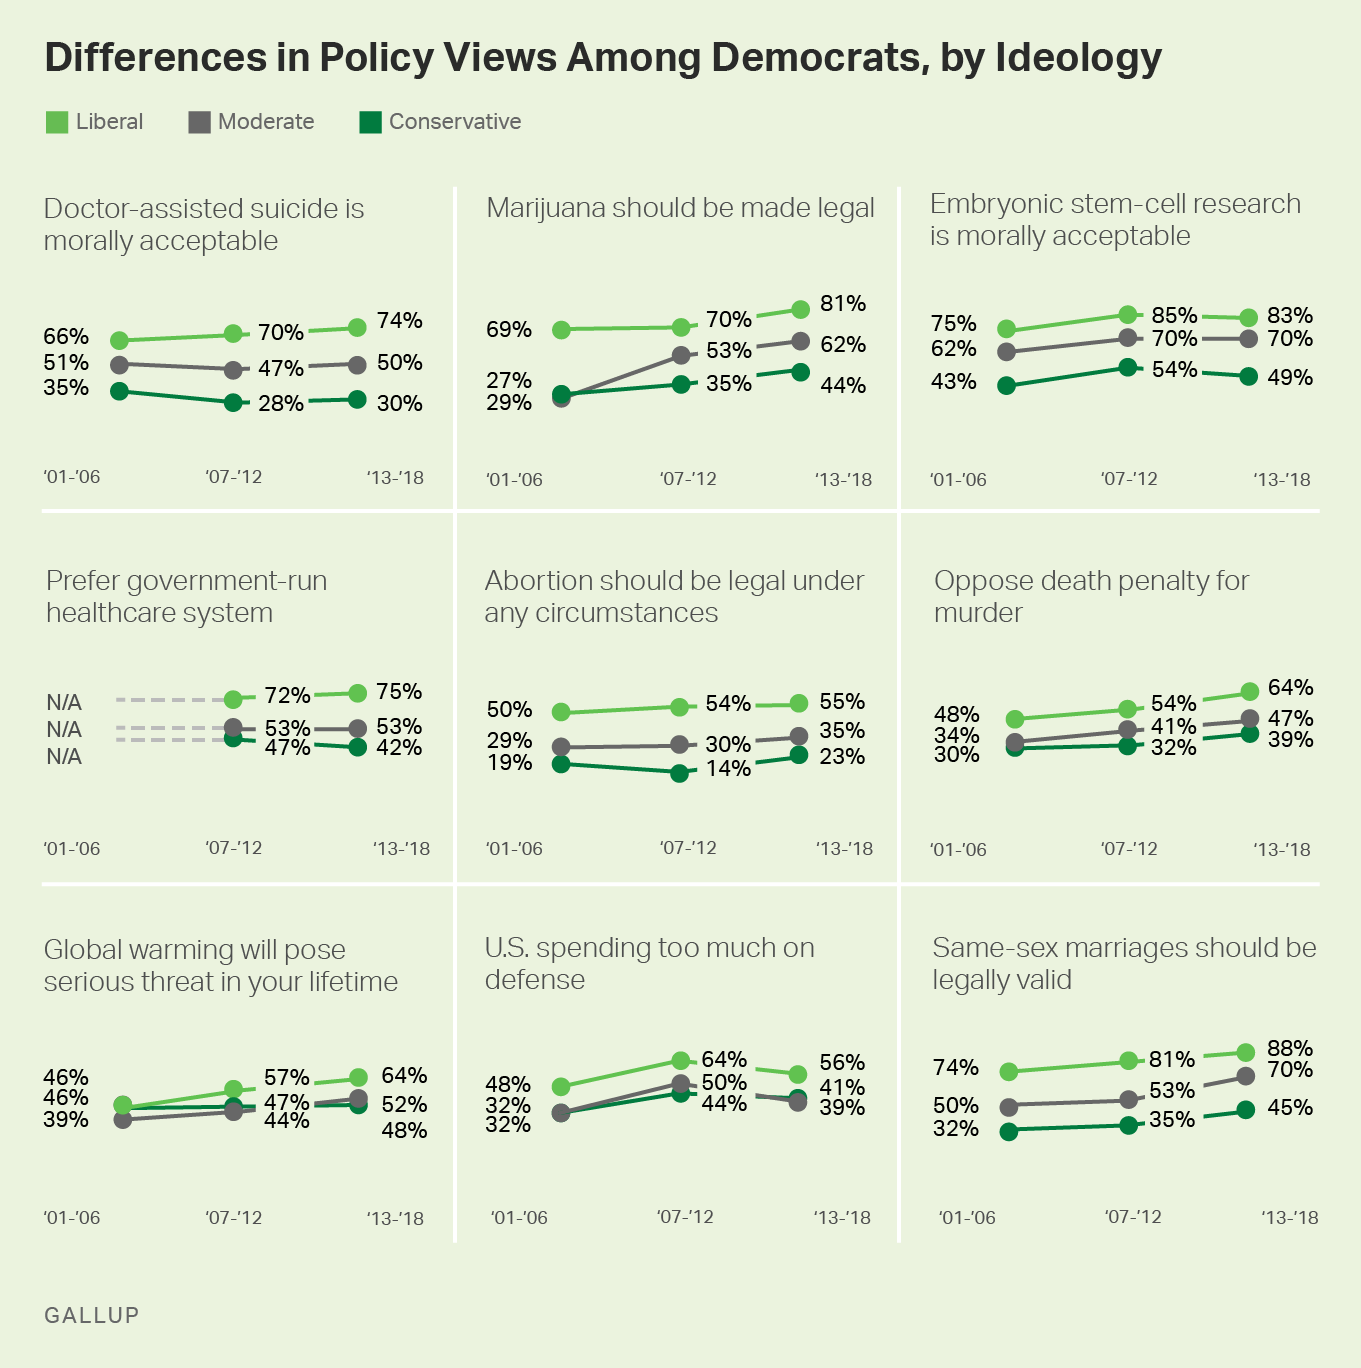 Small multiple graphs. Differences in policy views among Democrats, by ideology, 2001-2018 trends.